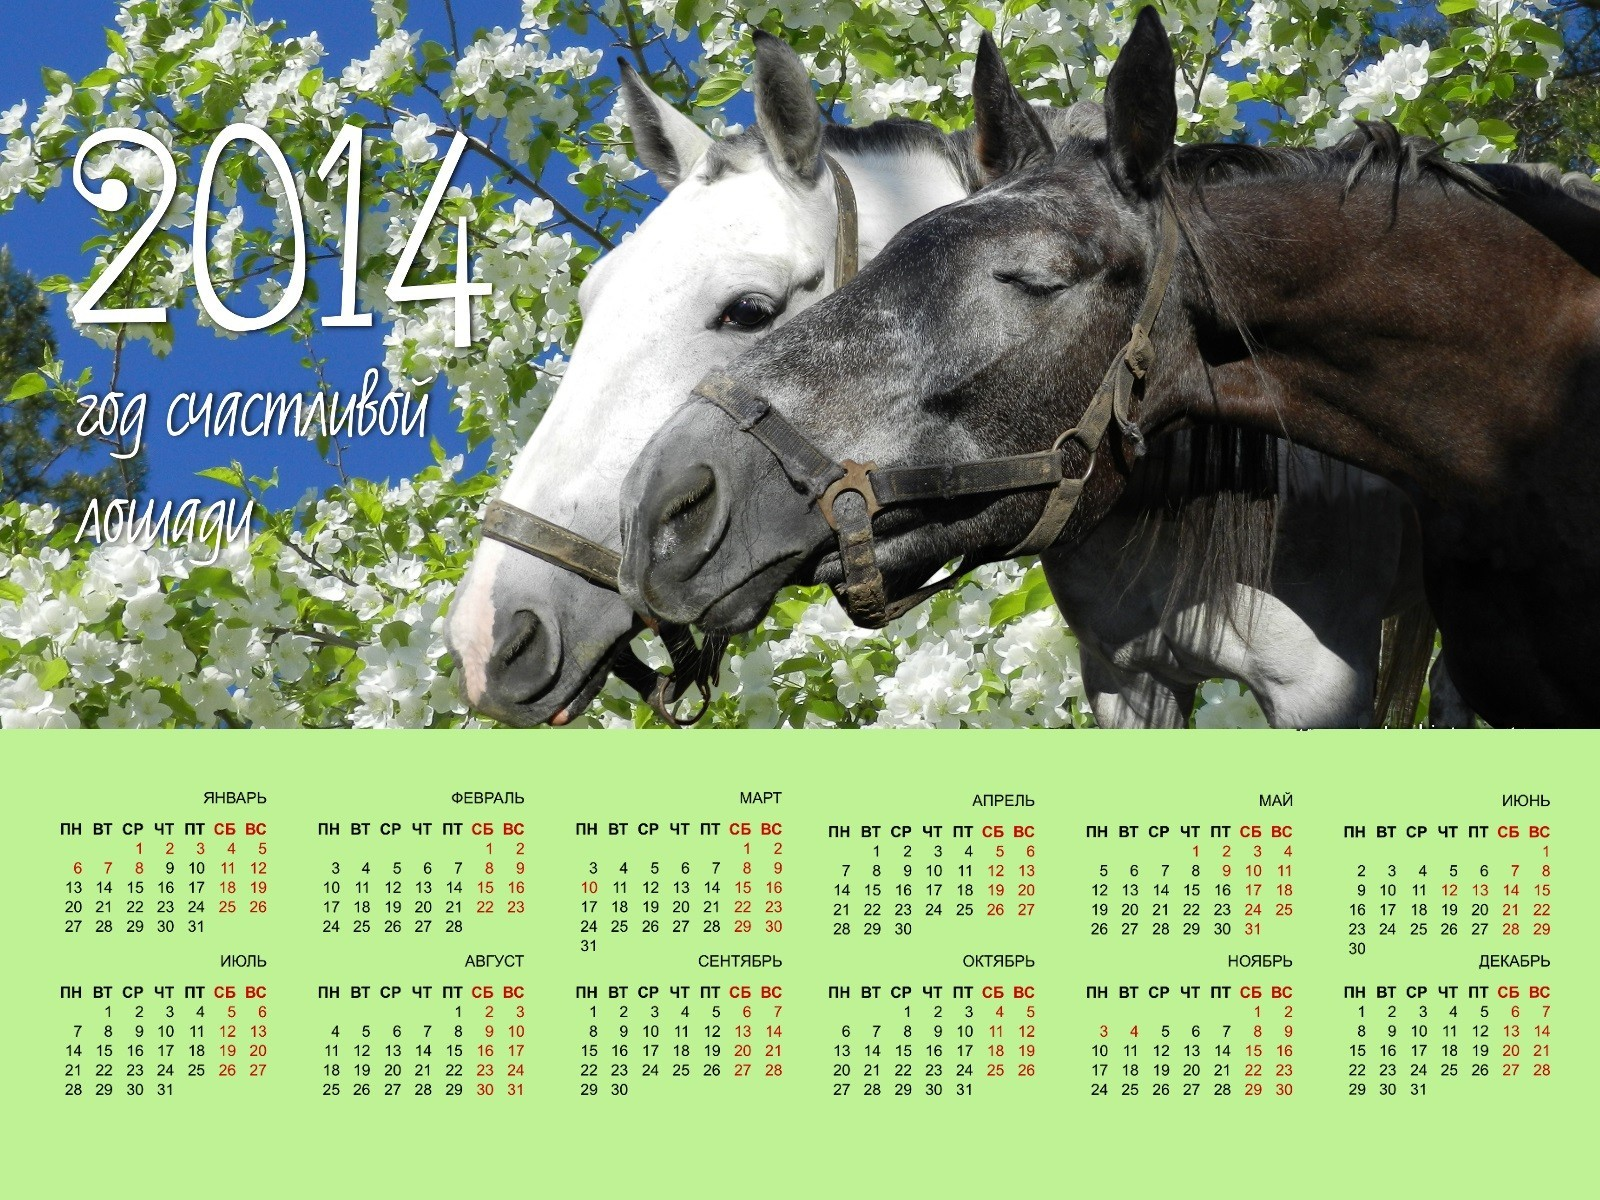 2014 Year Lucky Horse Free Wallpapers Images, Photos, Reviews